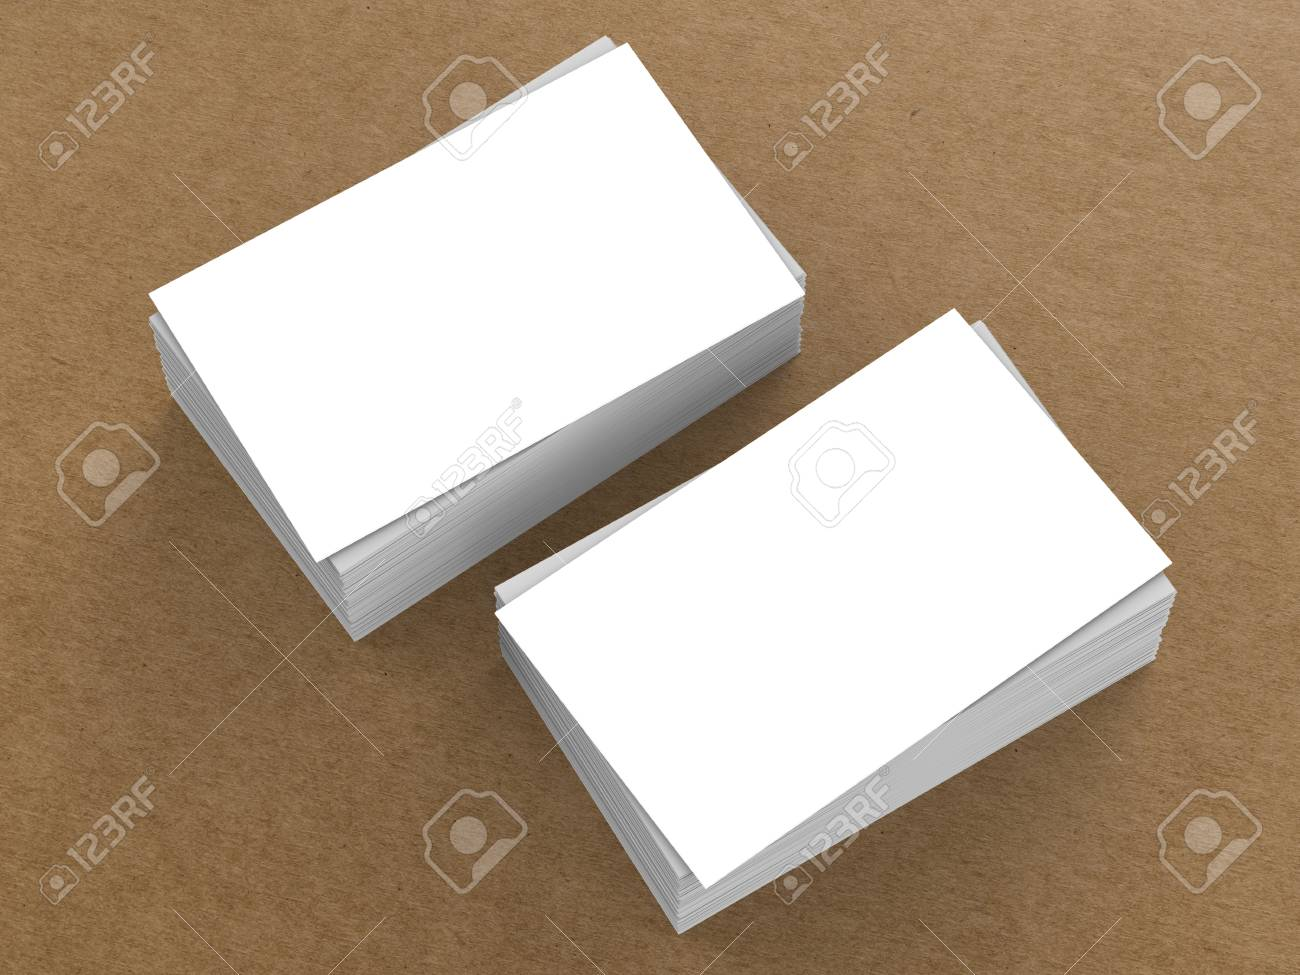 Stack Of White Blank Business Cards Or Name Cards Stock Photo ...